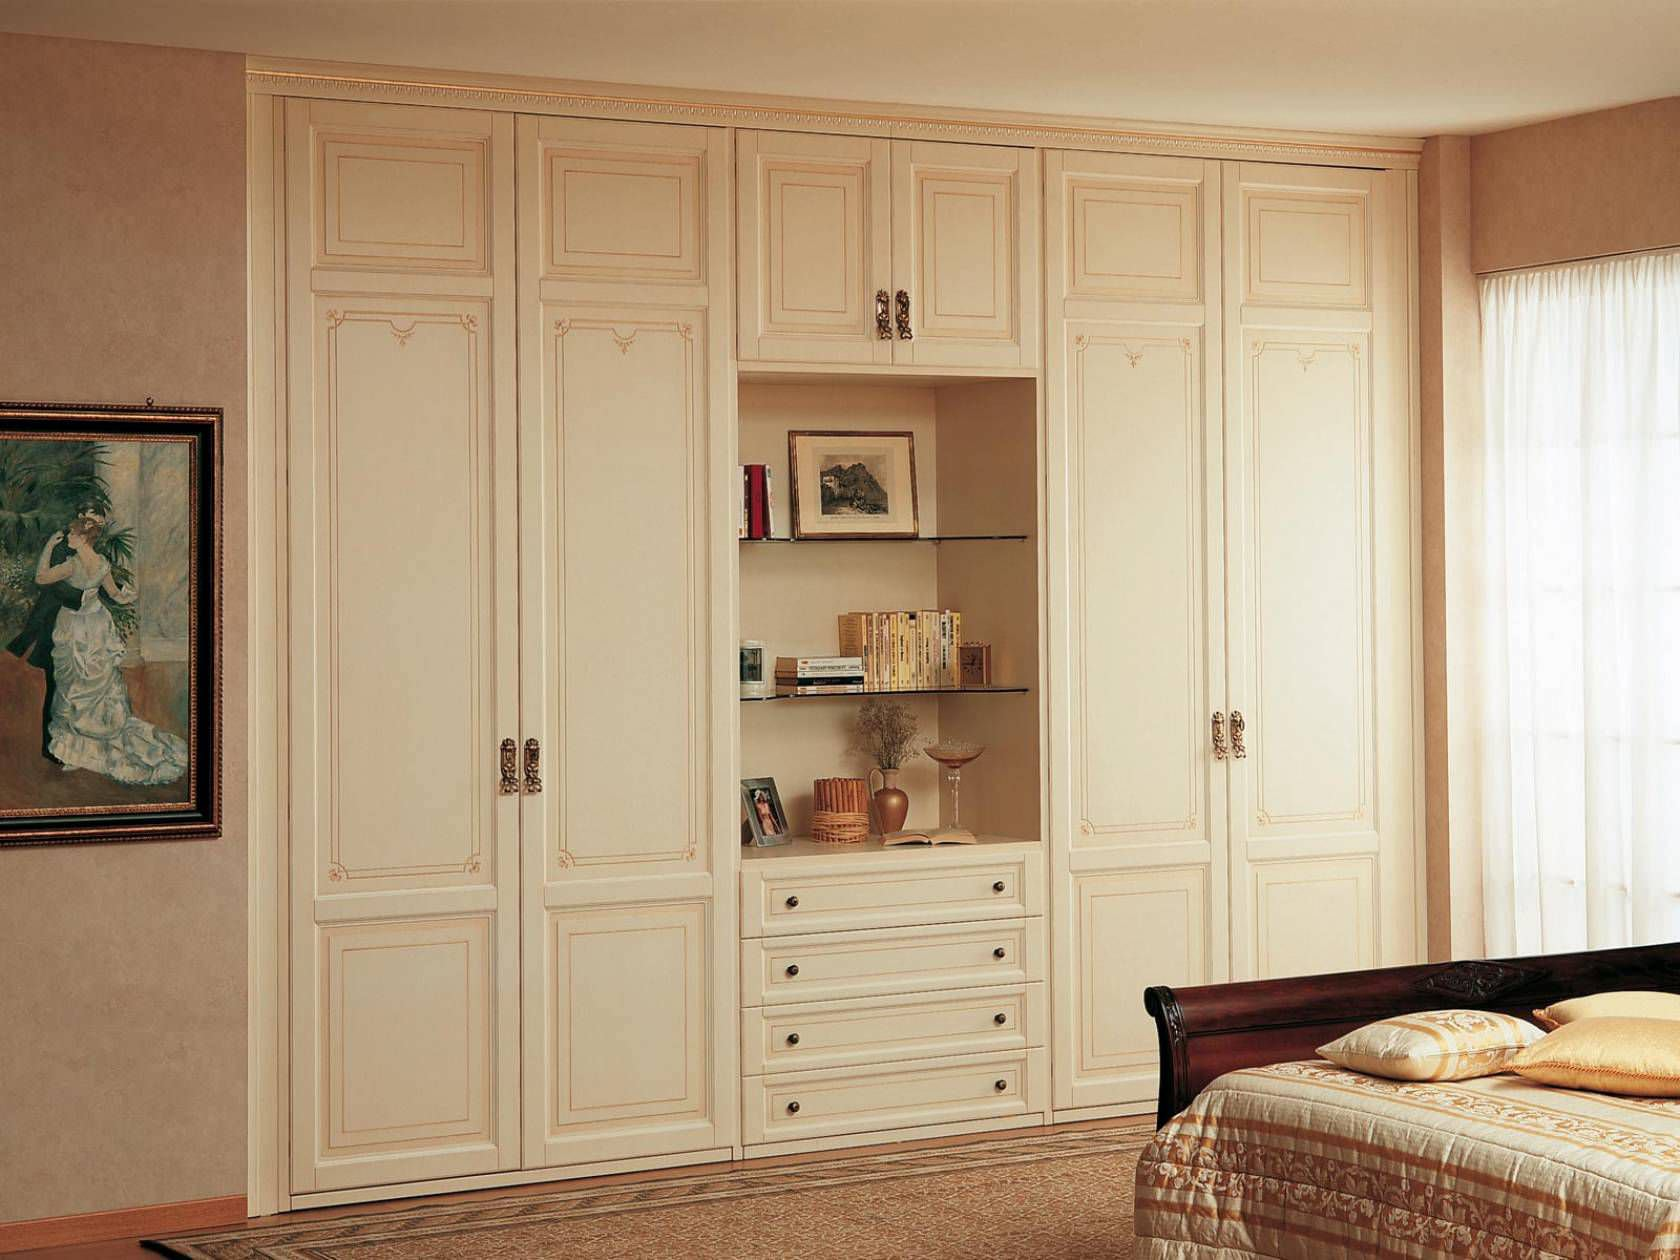 Traditional wardrobe / wooden / with swing doors PORTABLE VIMERCATI MEDA LUXURY CLASSIC FURNITURE ... & Traditional wardrobe / wooden / with swing doors - PORTABLE ... Pezcame.Com